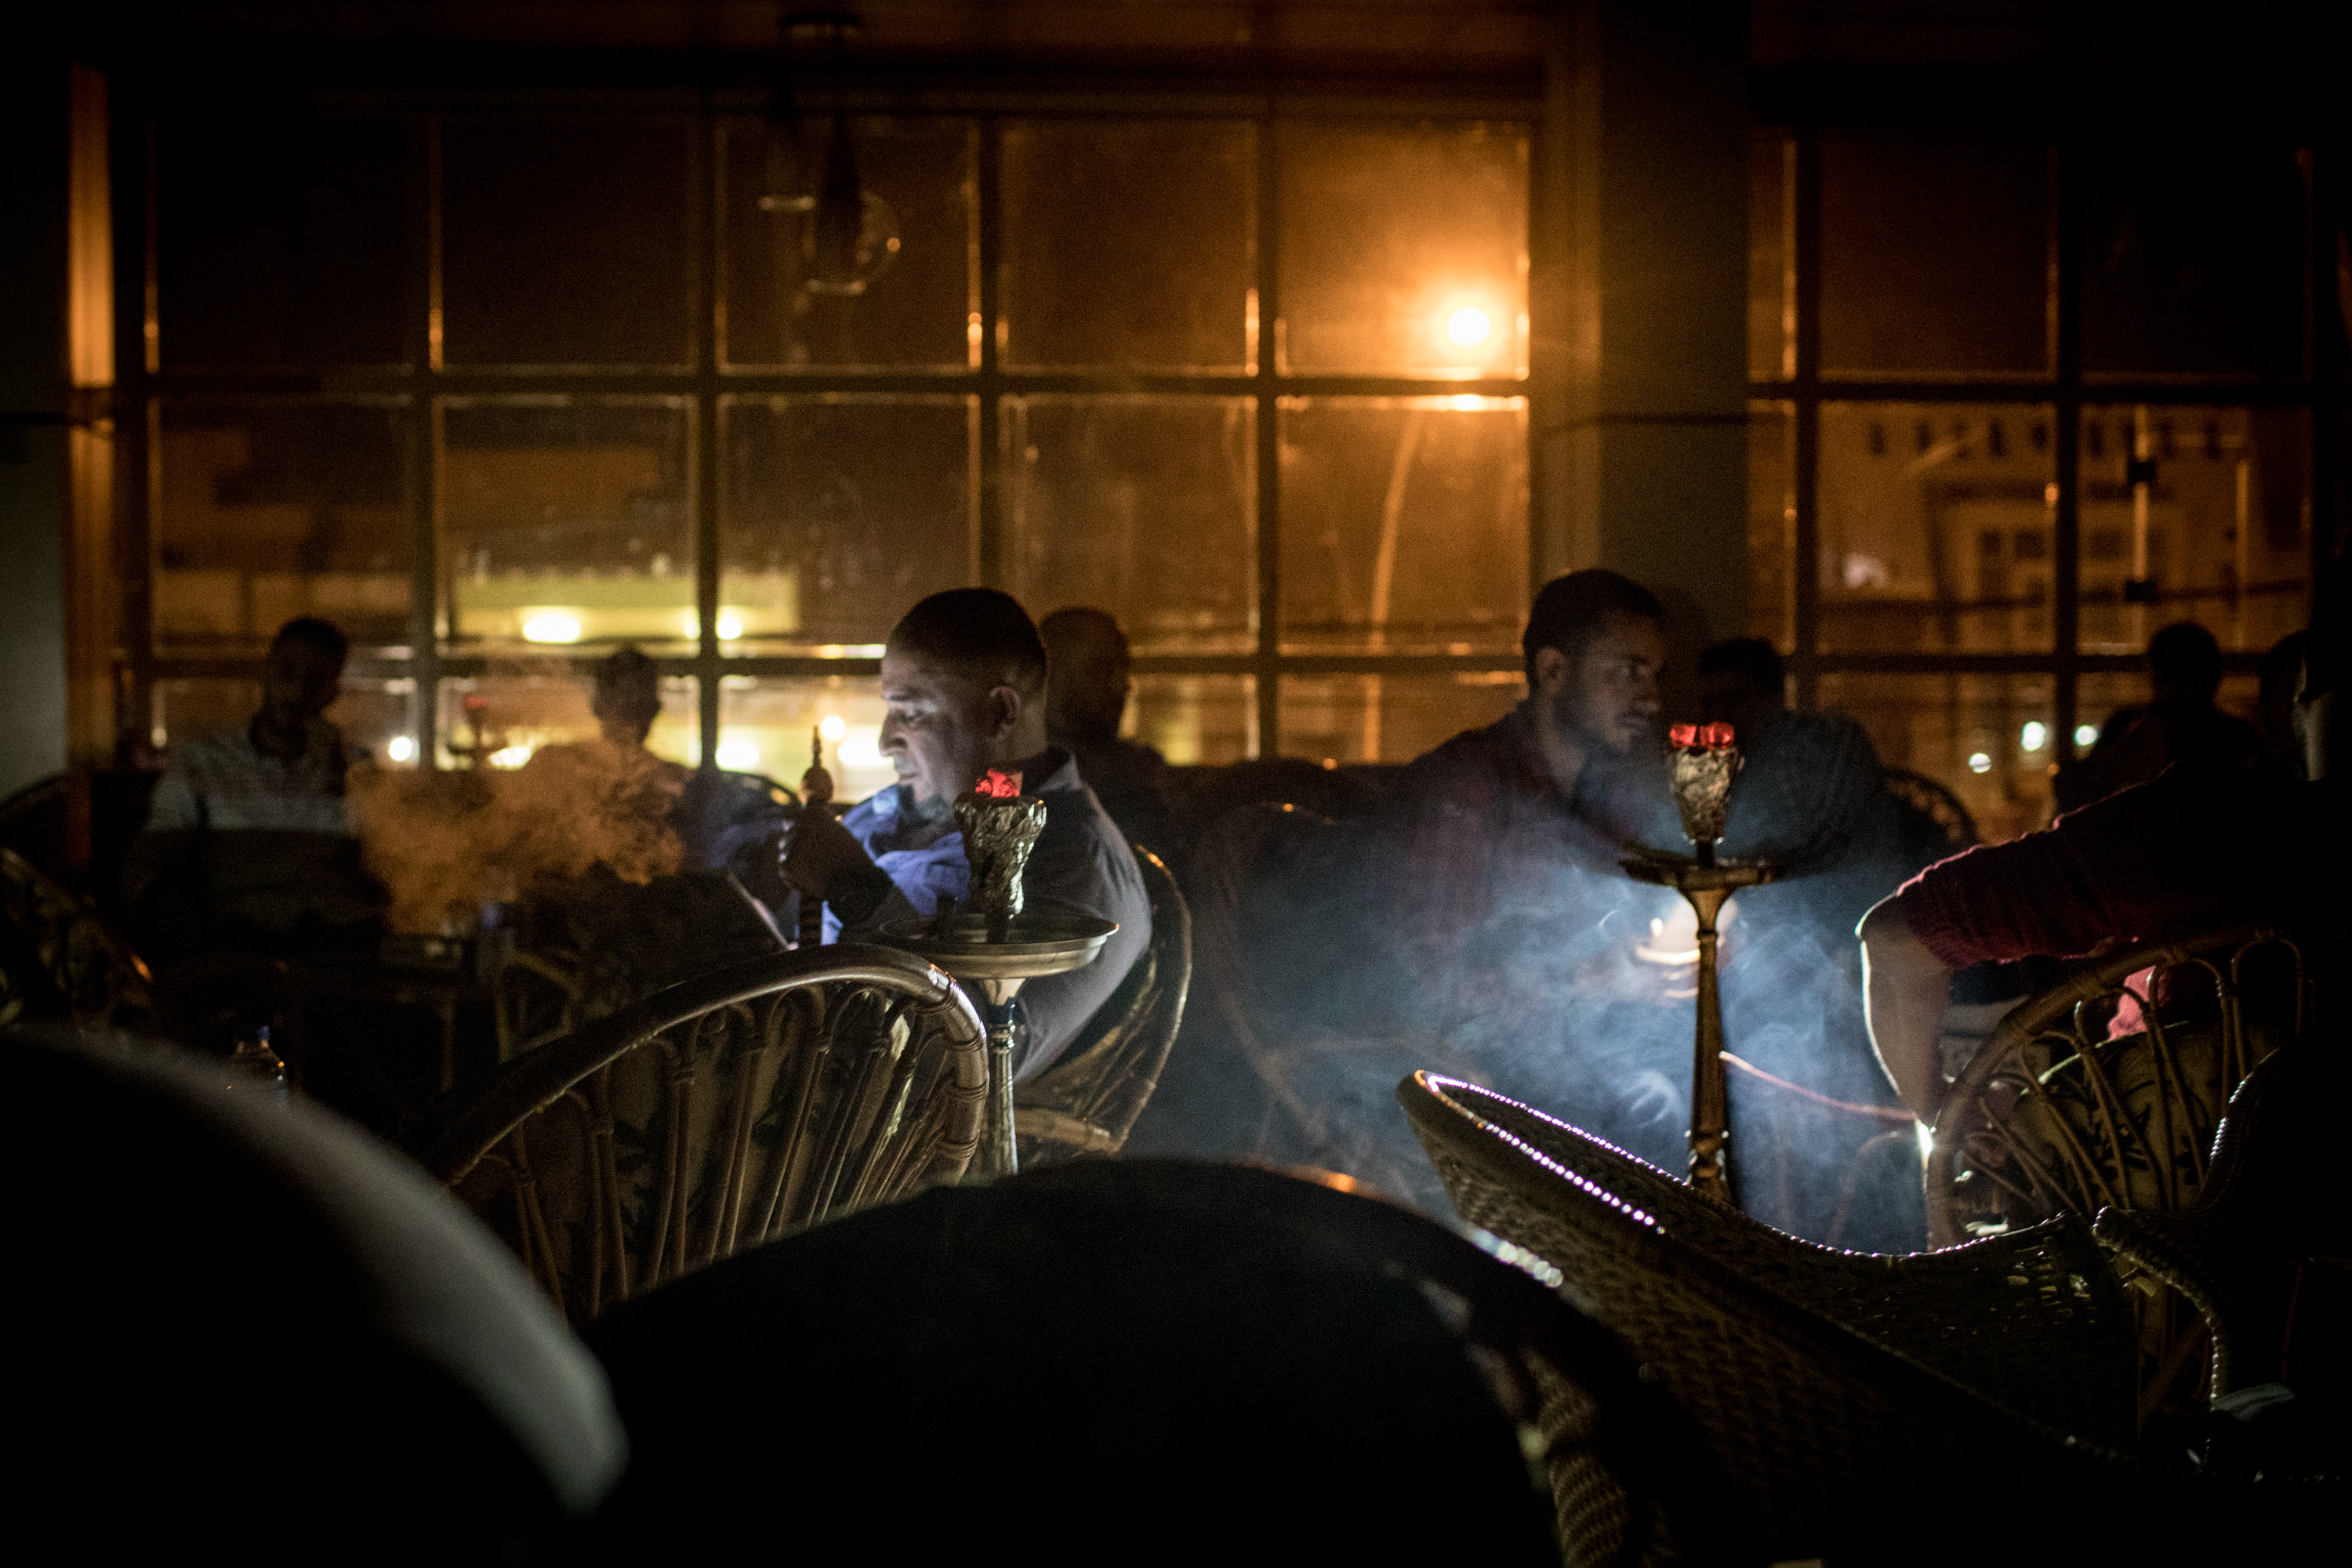 Hombres fuman en un café durante un corte de luz (Chris McGrath/Getty Images)